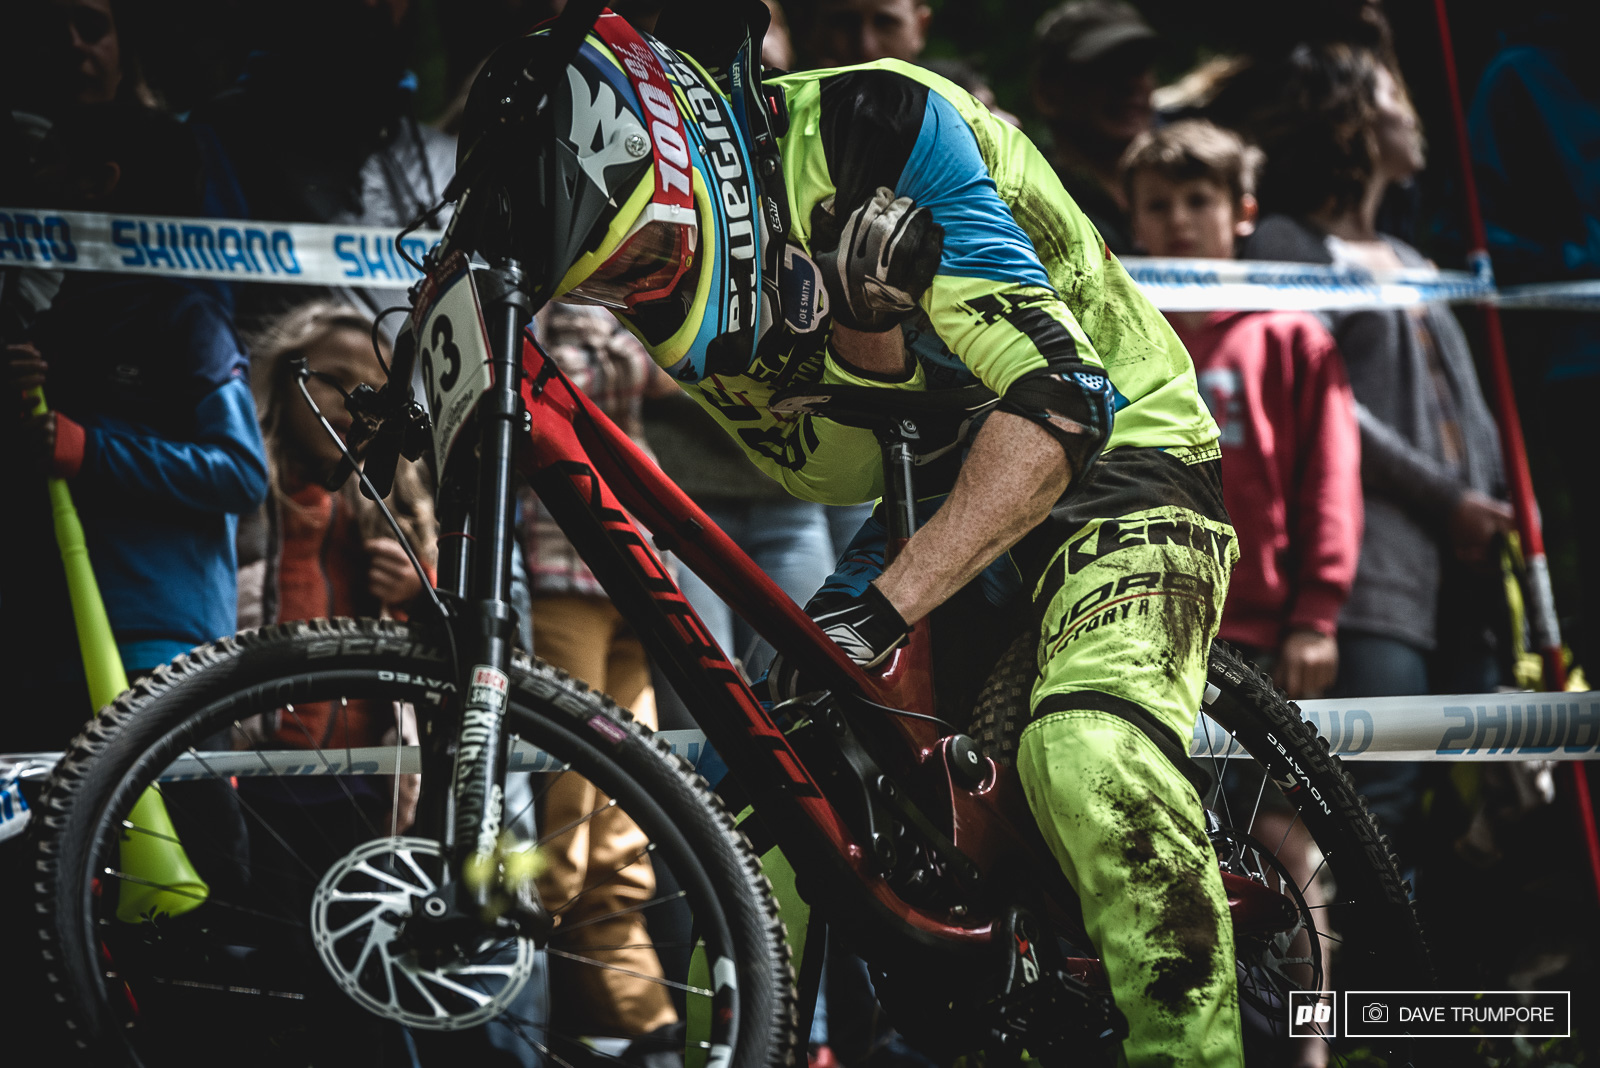 Joe Smith had a massive crash and had to pul off track with what looked like an injured shoulder. Let s hope it s not too serious and that he will be back out amongst it at the next round.